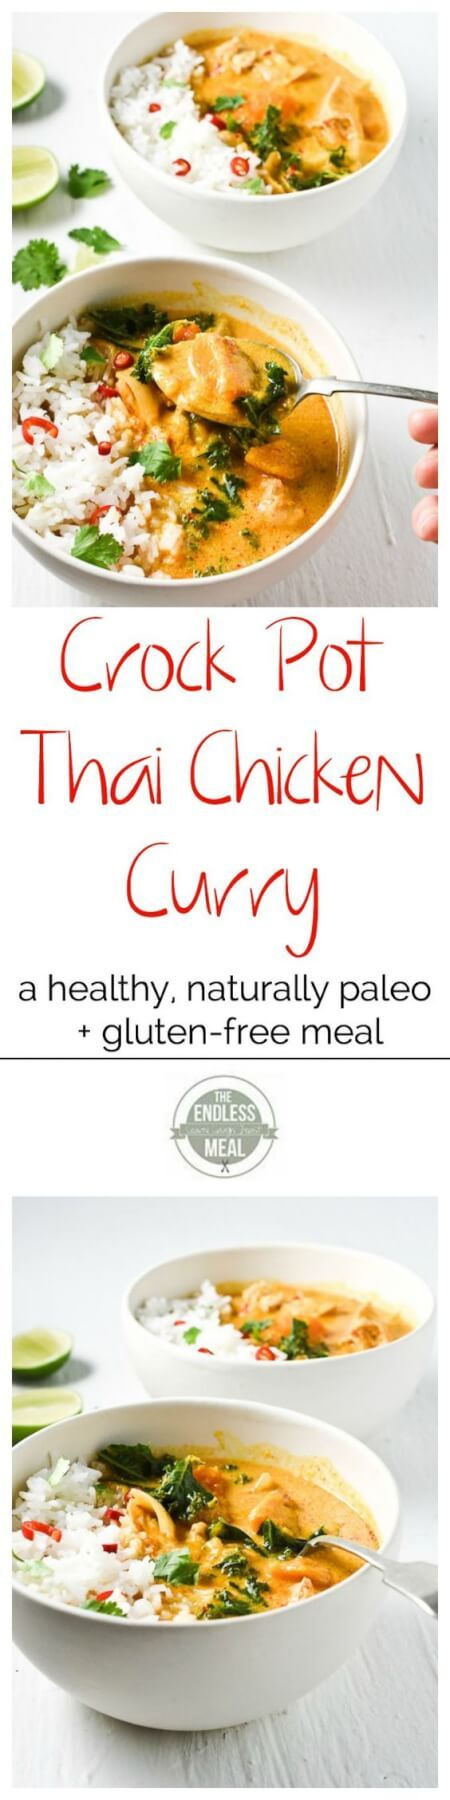 Clean Eating Crock Pot Thai Chicken Curry Recipe